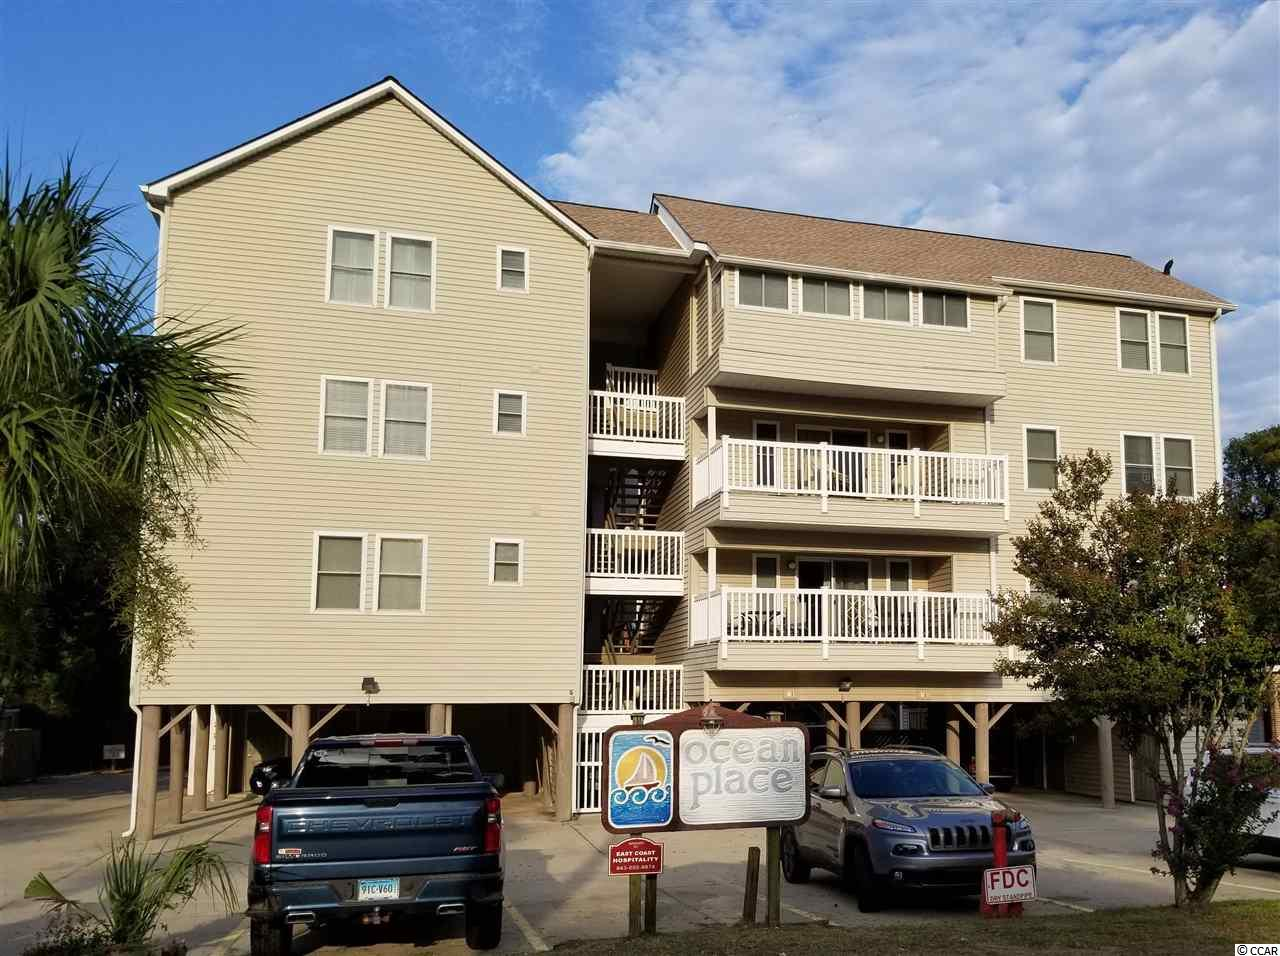 Beautiful 2 bedroom / 2 Bath Condominium with a view of the ocean from your private Balcony. Just a short walk to the beach. Recently remodeled. Stainless steel appliances and new cabinets. Granite counter tops in Kitchen and both Bathroom sinks. Spacious unit with under building storage room.